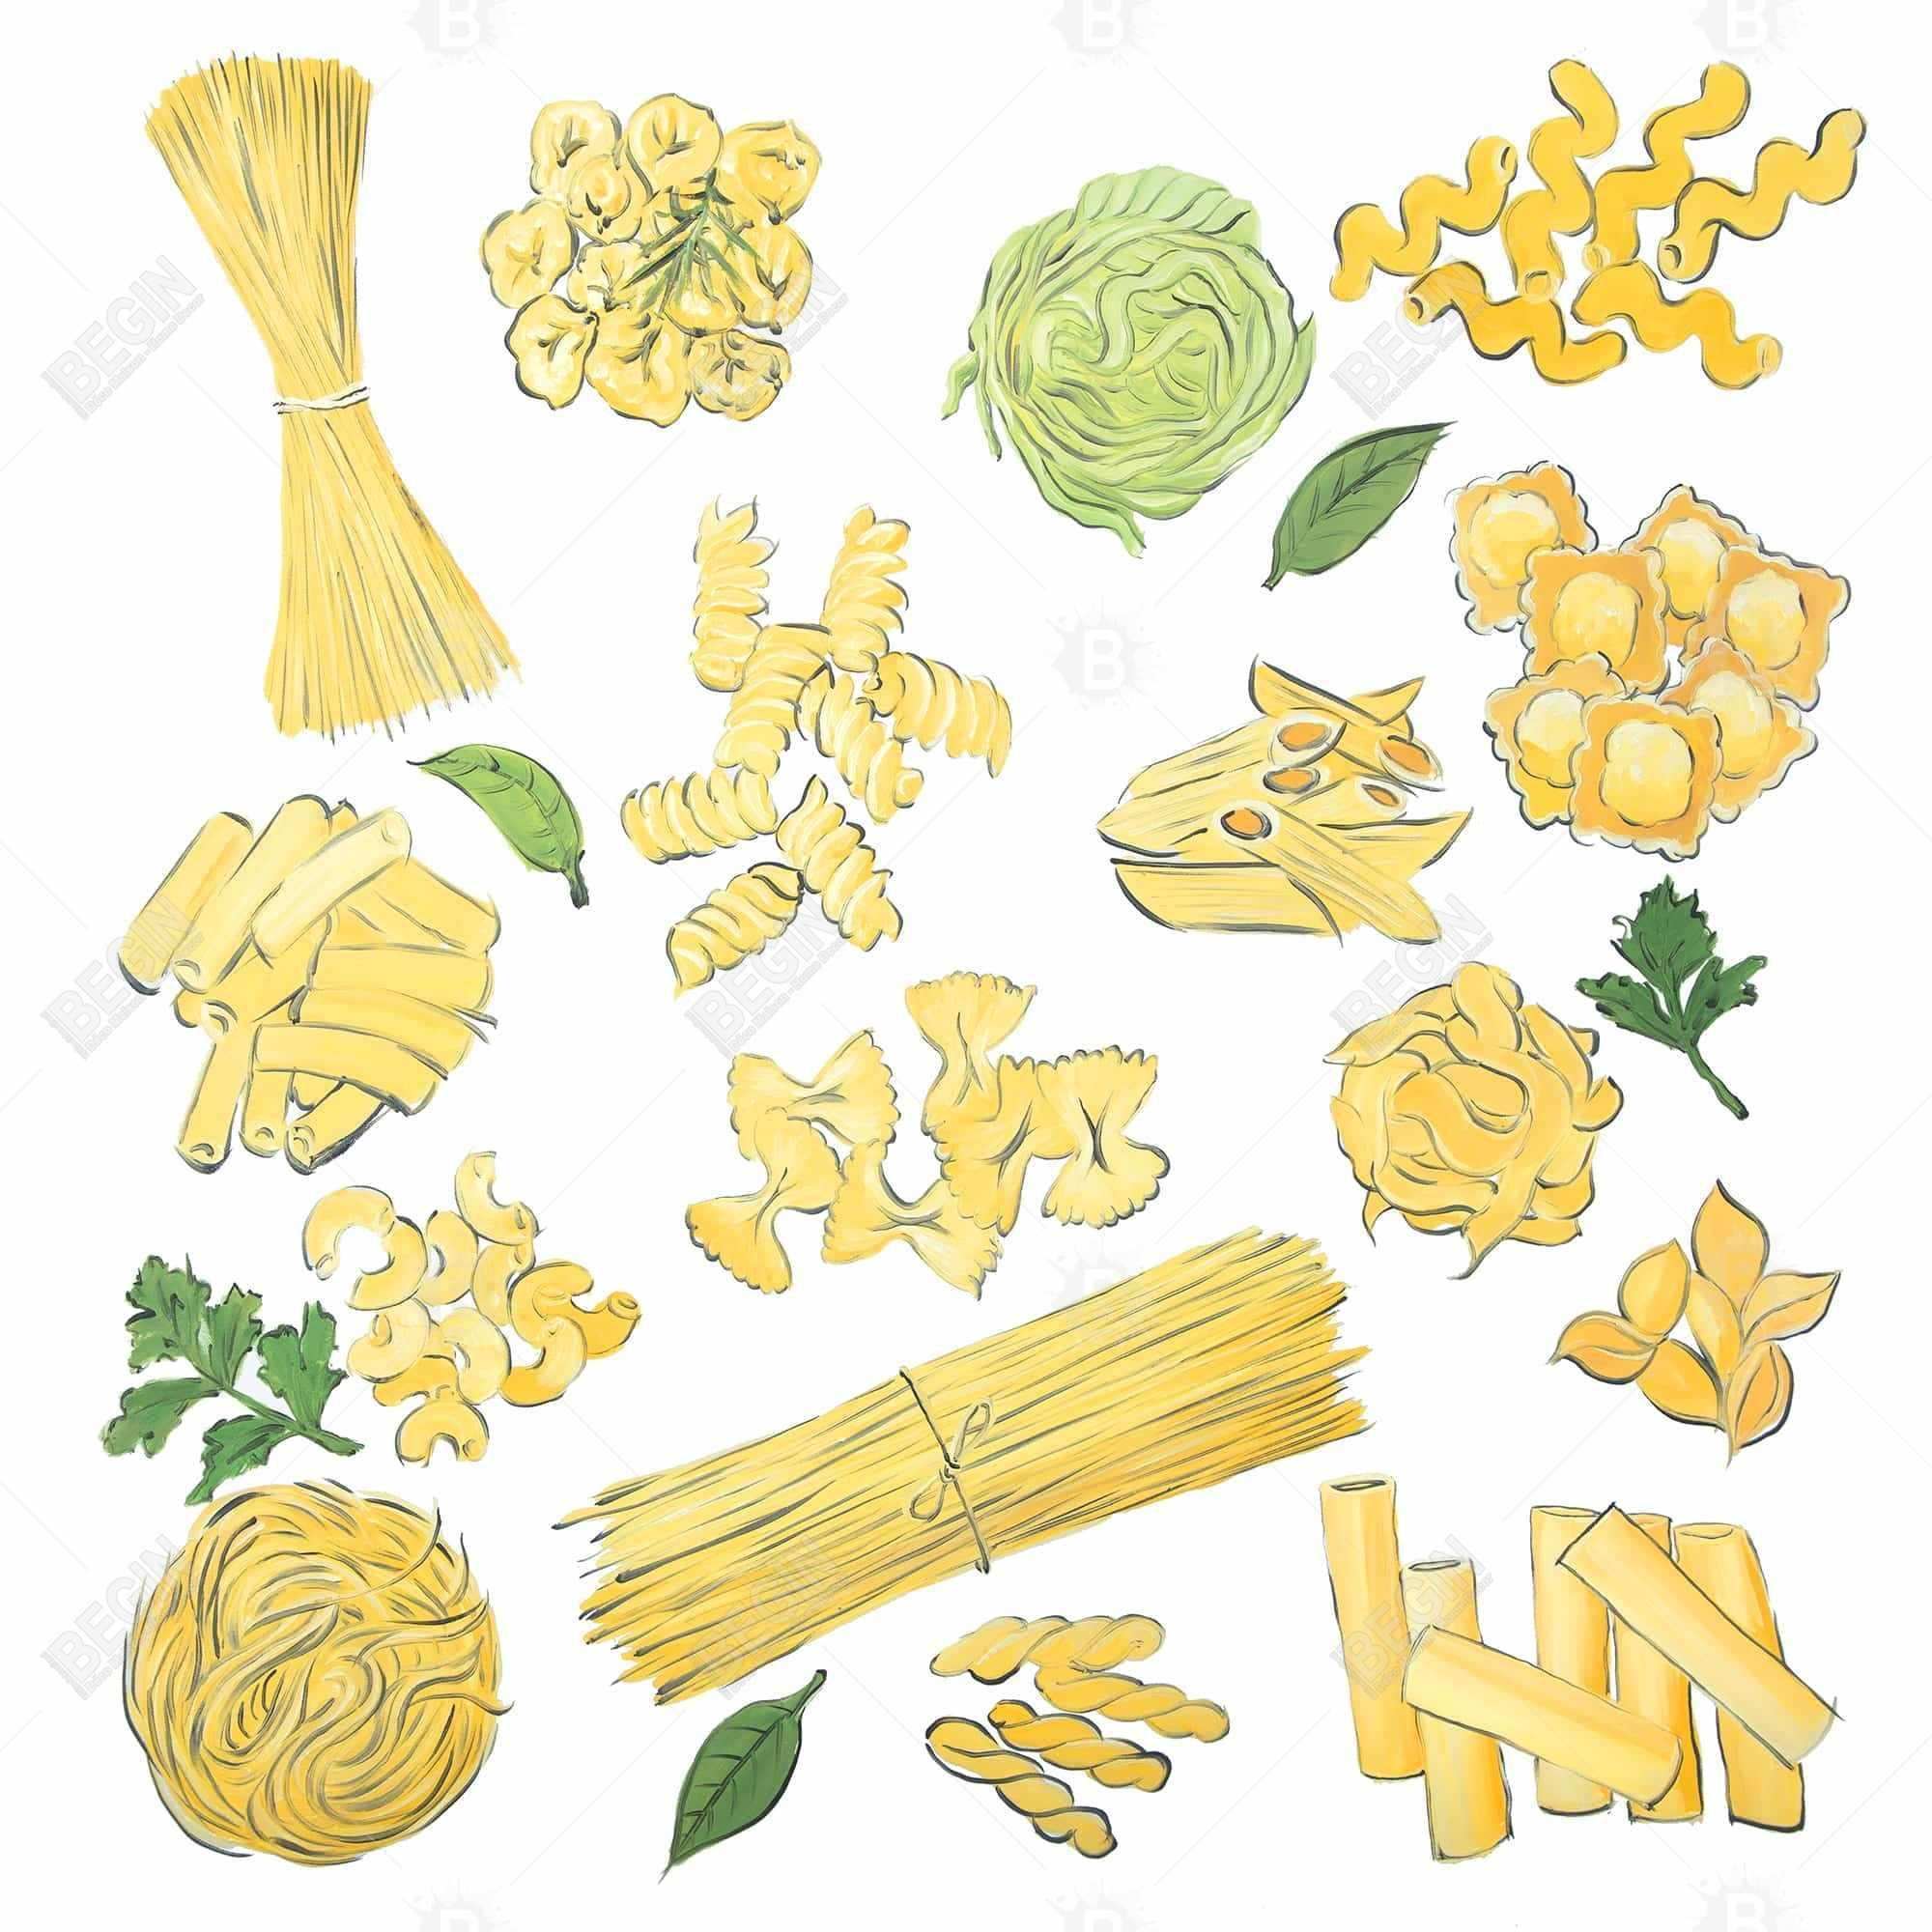 Various kind of pasta